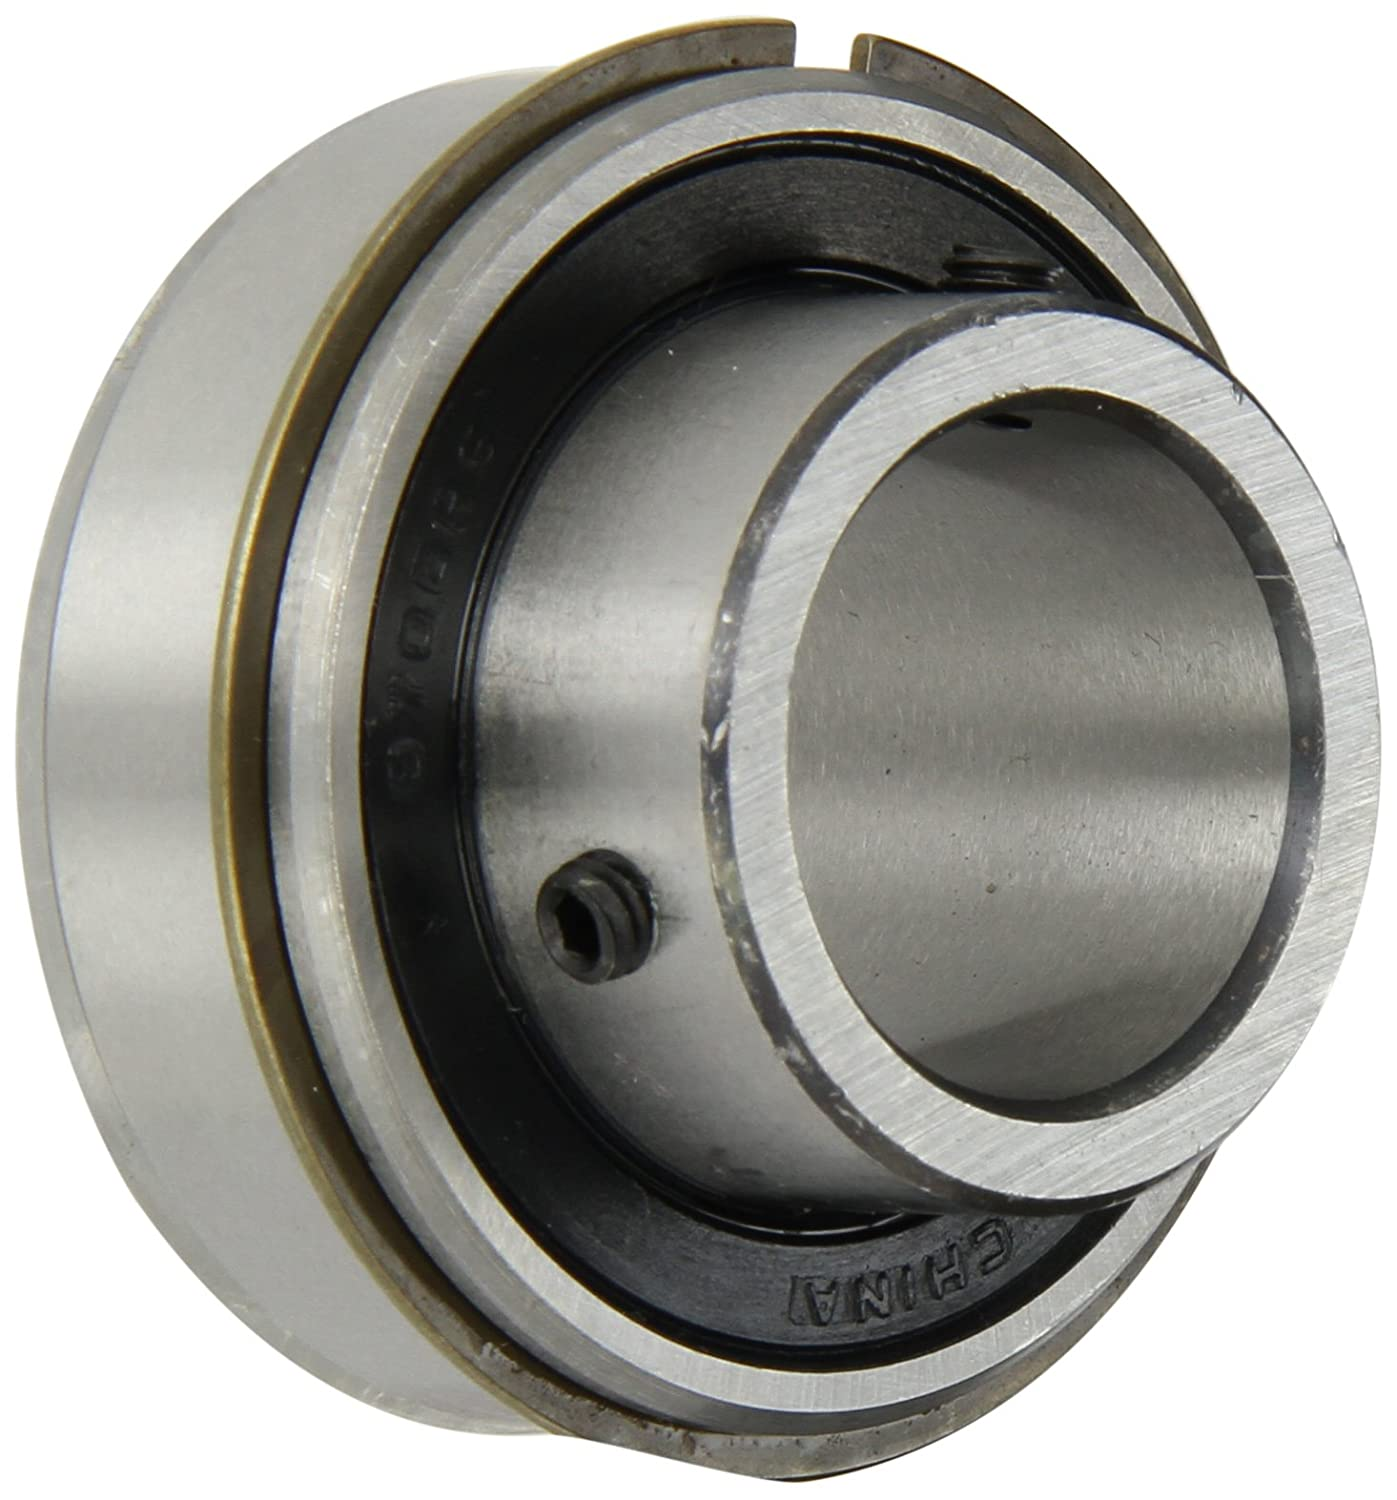 4 Radial Ball Bearing.Metal. 1//2 X 3//4 X 5//32 1//2 inch bore Lowest Friction